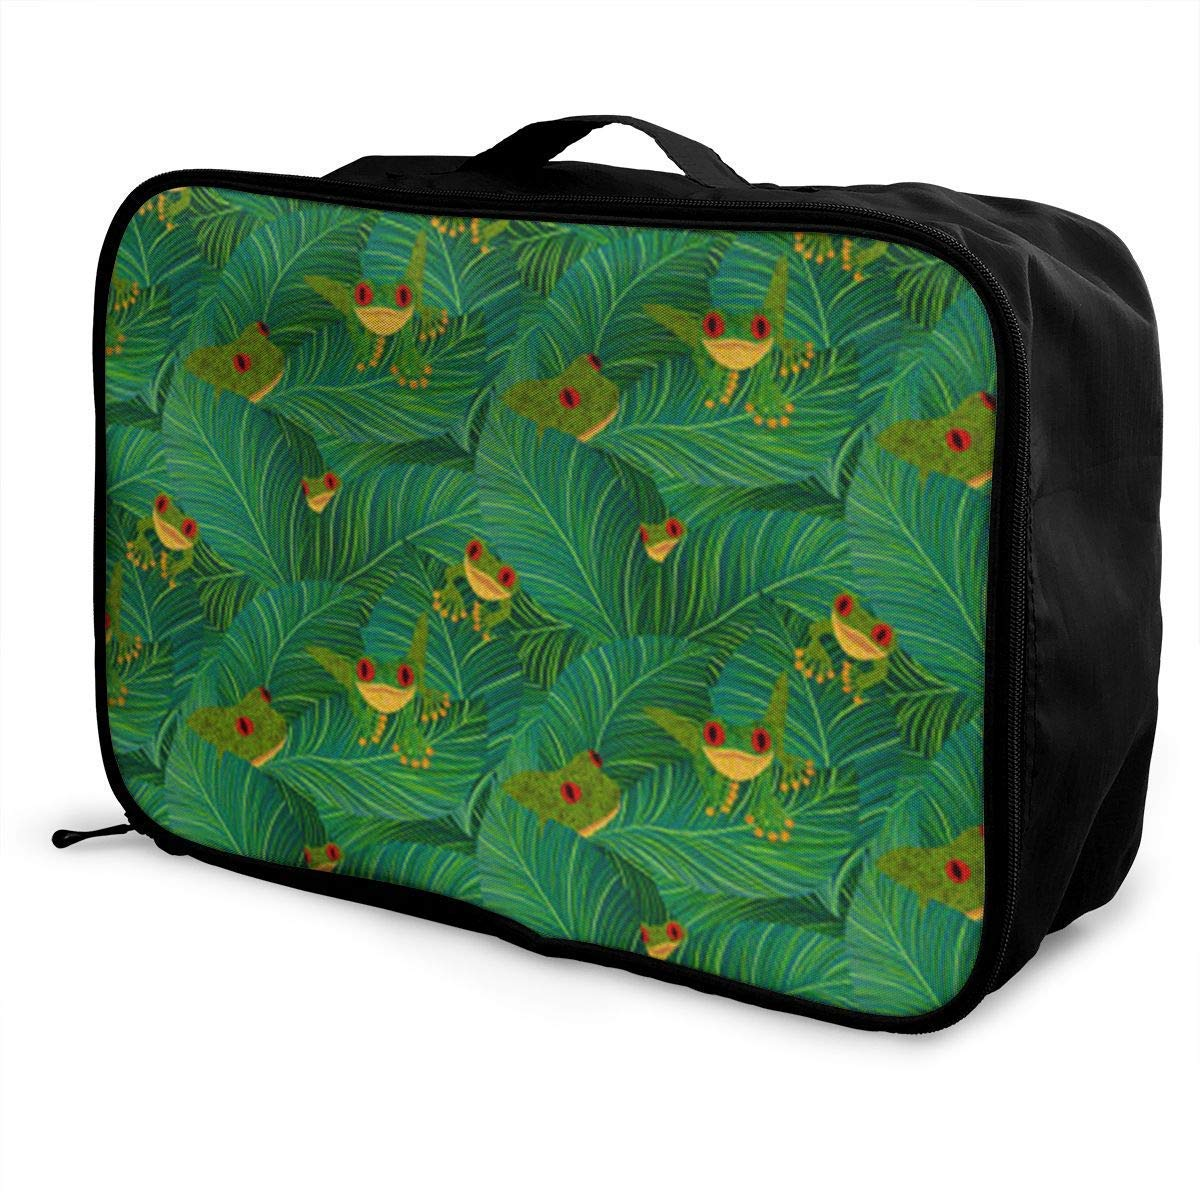 Portable Luggage Duffel Bag Tropical Tree Frog Travel Bags Carry-on in Trolley Handle JTRVW Luggage Bags for Travel